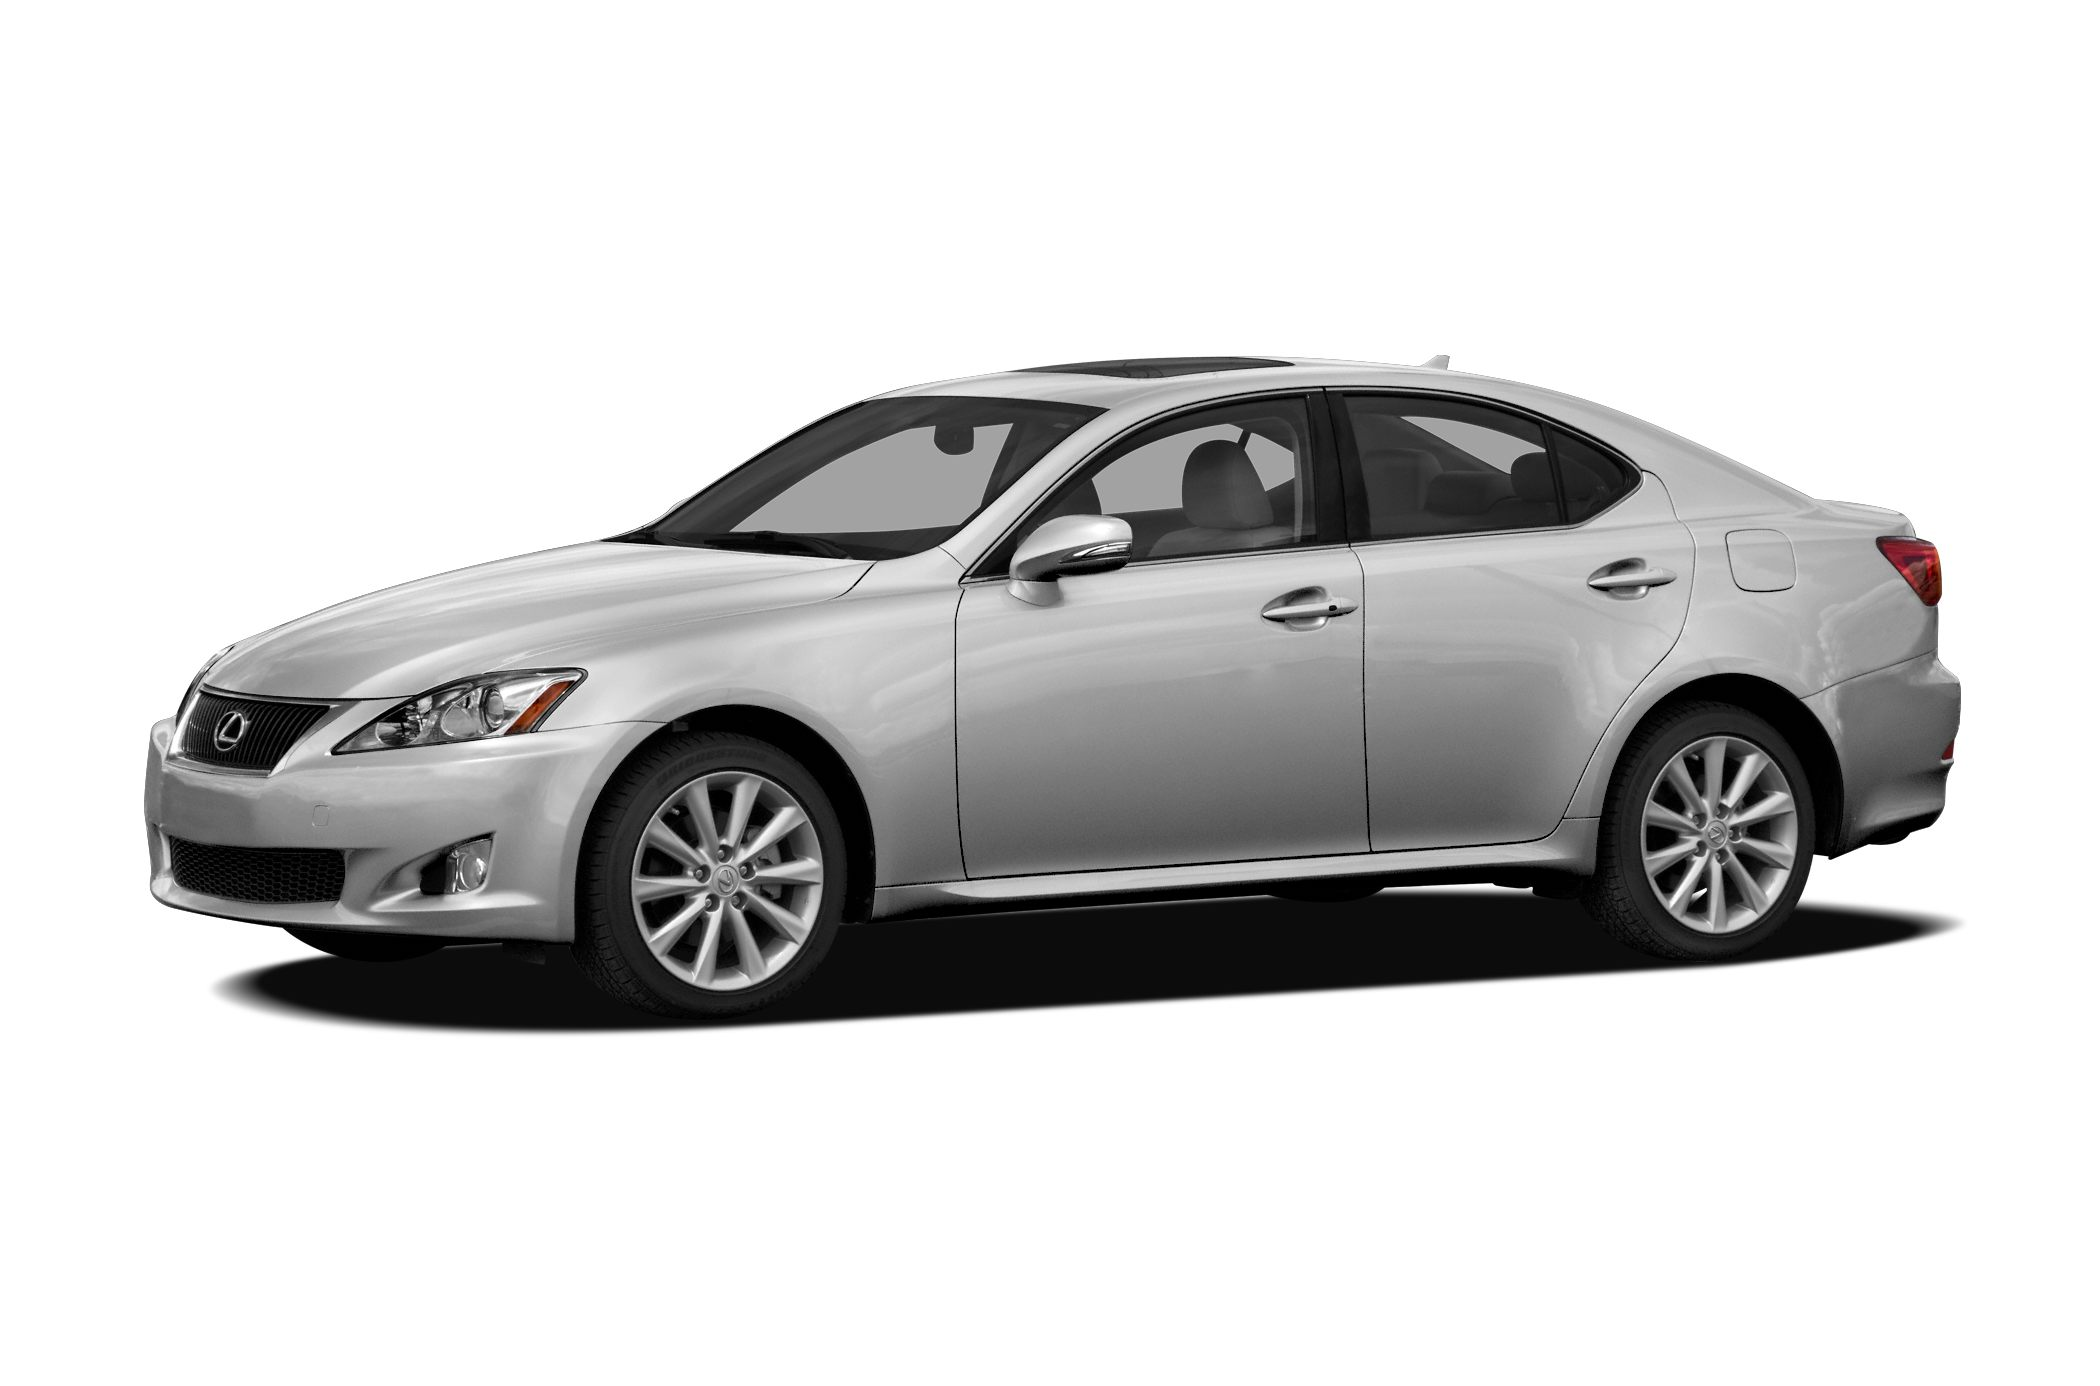 2012 Lexus IS 250 Base Sedan for sale in Pembroke Pines for $26,915 with 29,105 miles